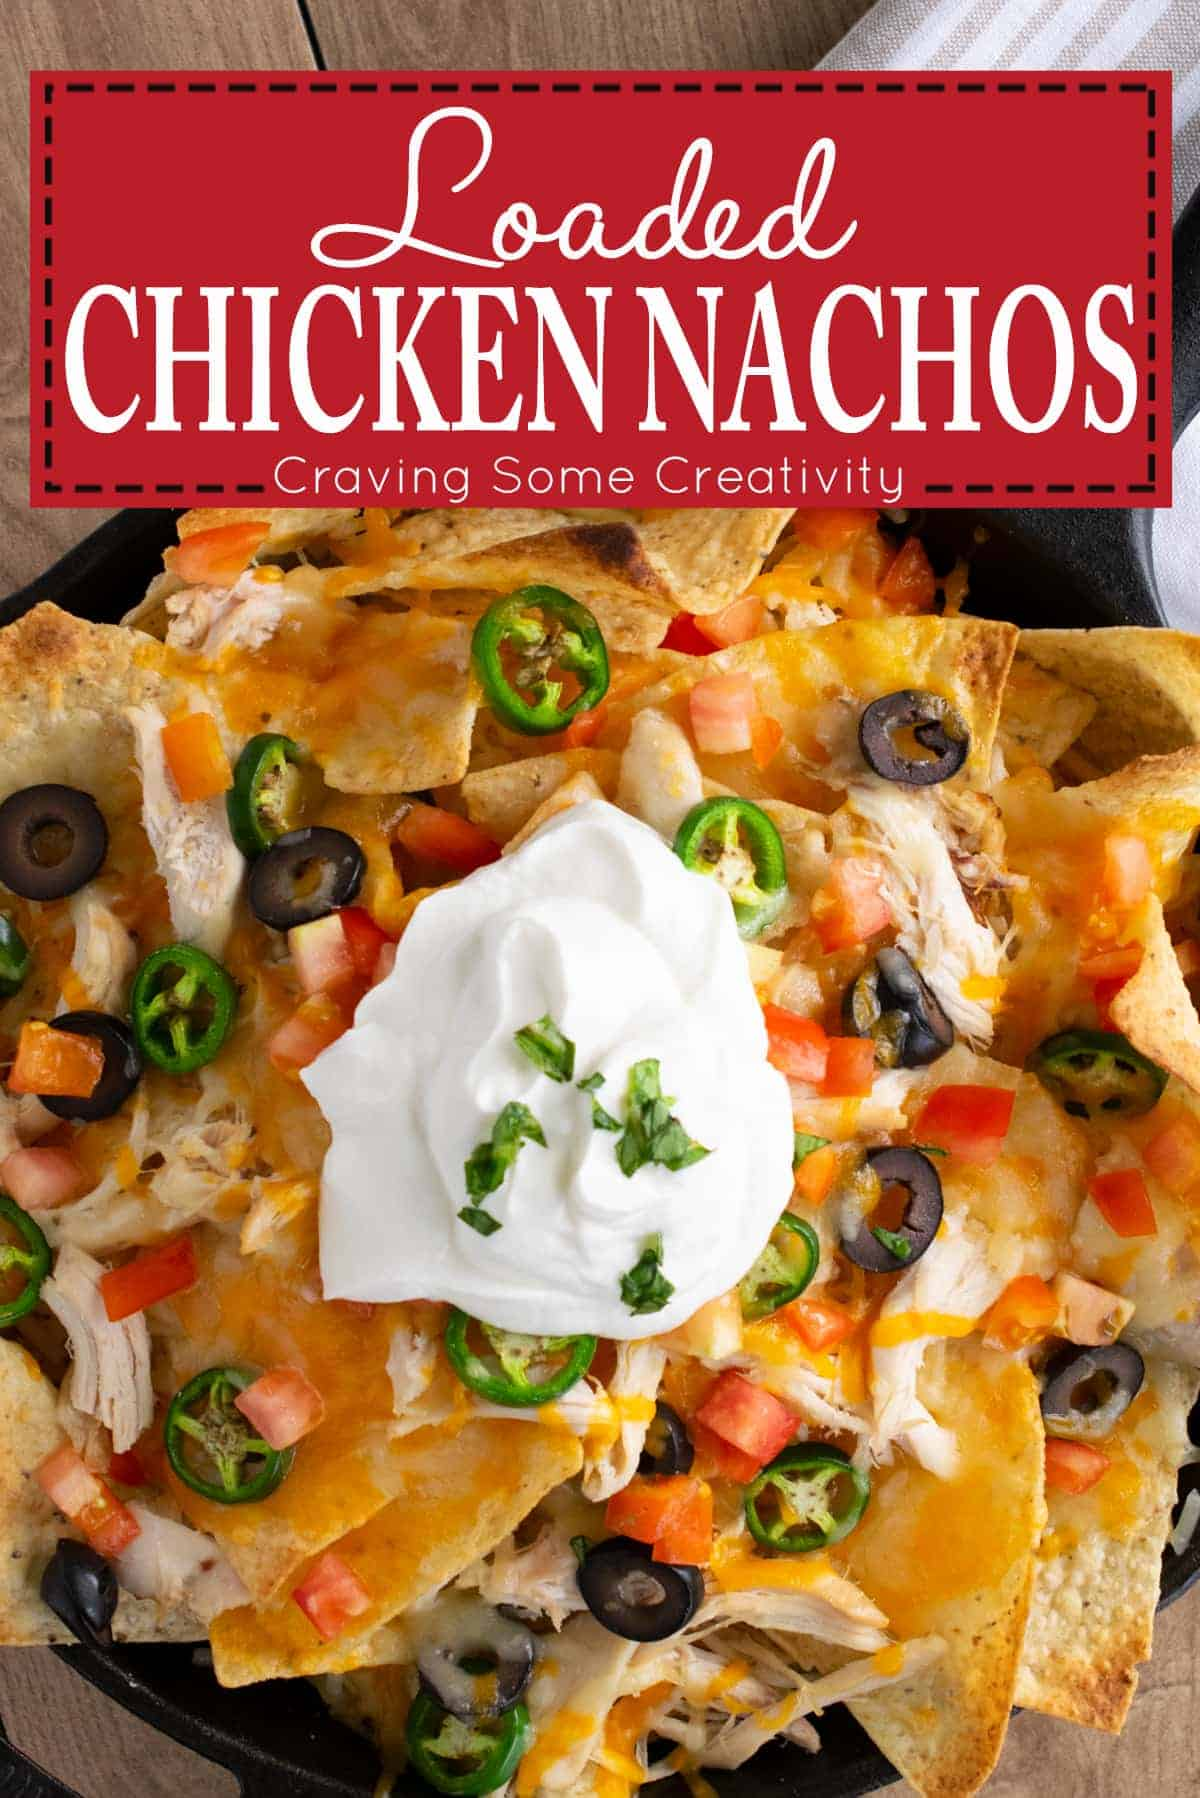 Loaded Chicken nachos topped with melted cheese, black olives, diced tomatoes, jalapenos, and sour cream in cast iron skillet with post title.